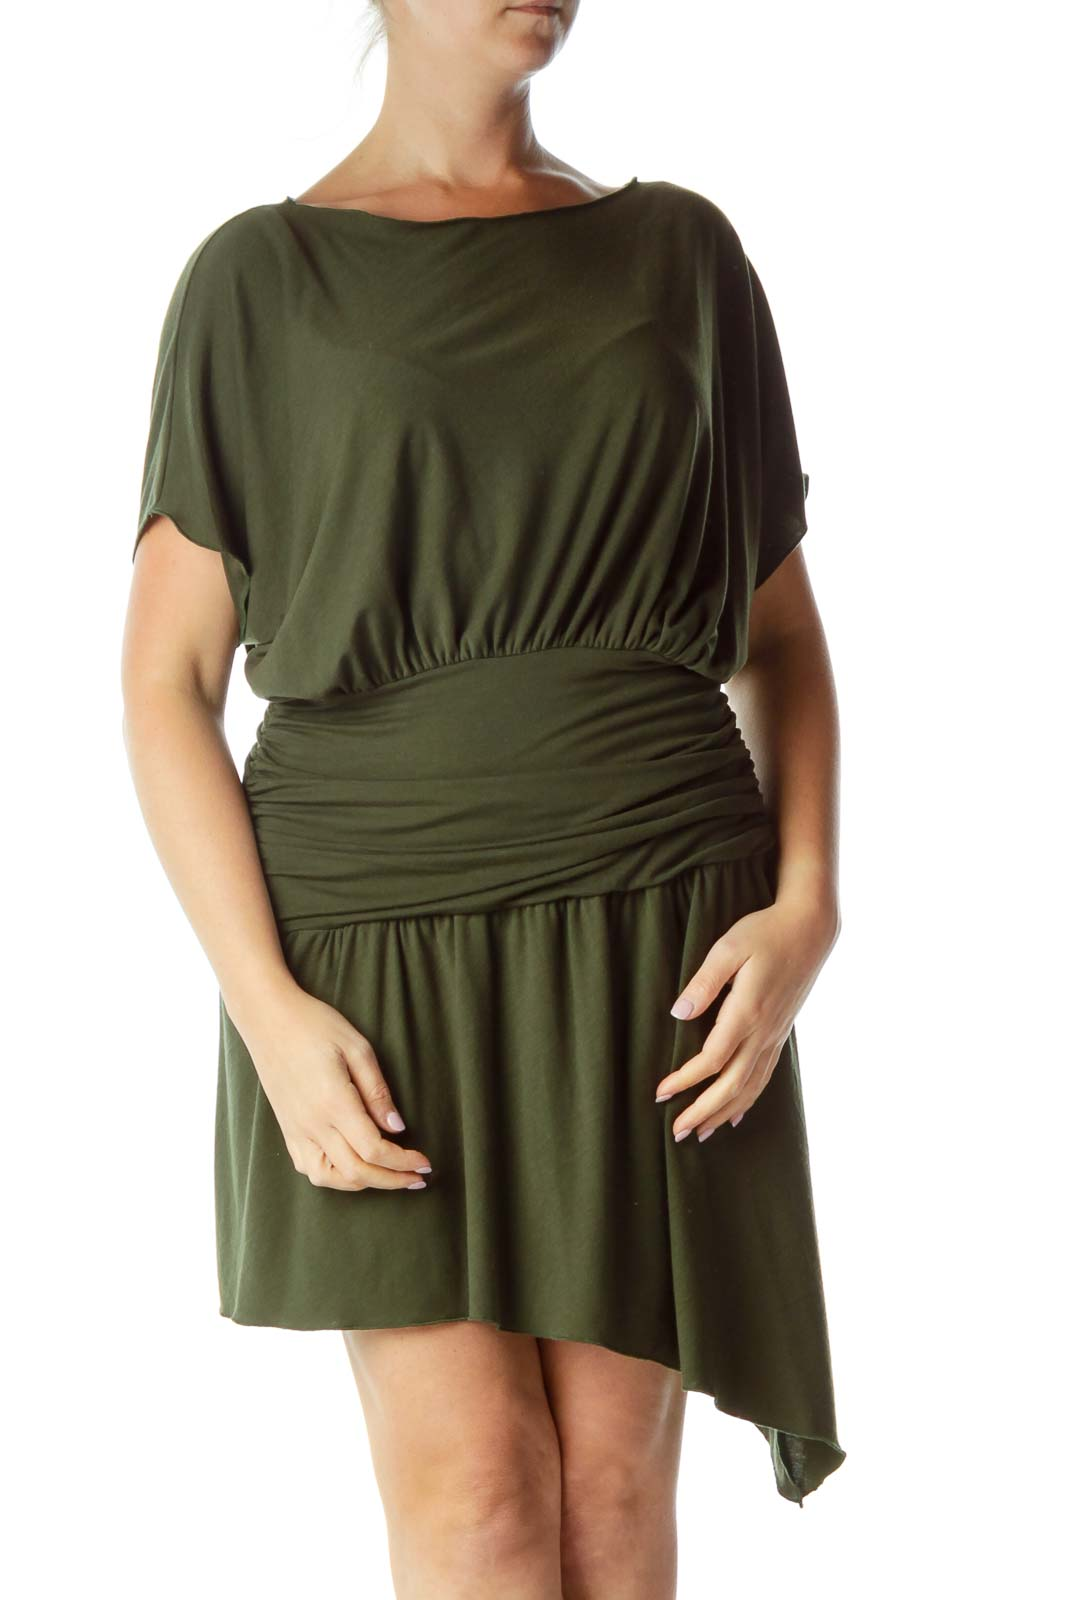 Green Bat Sleeve Cocktail Dress